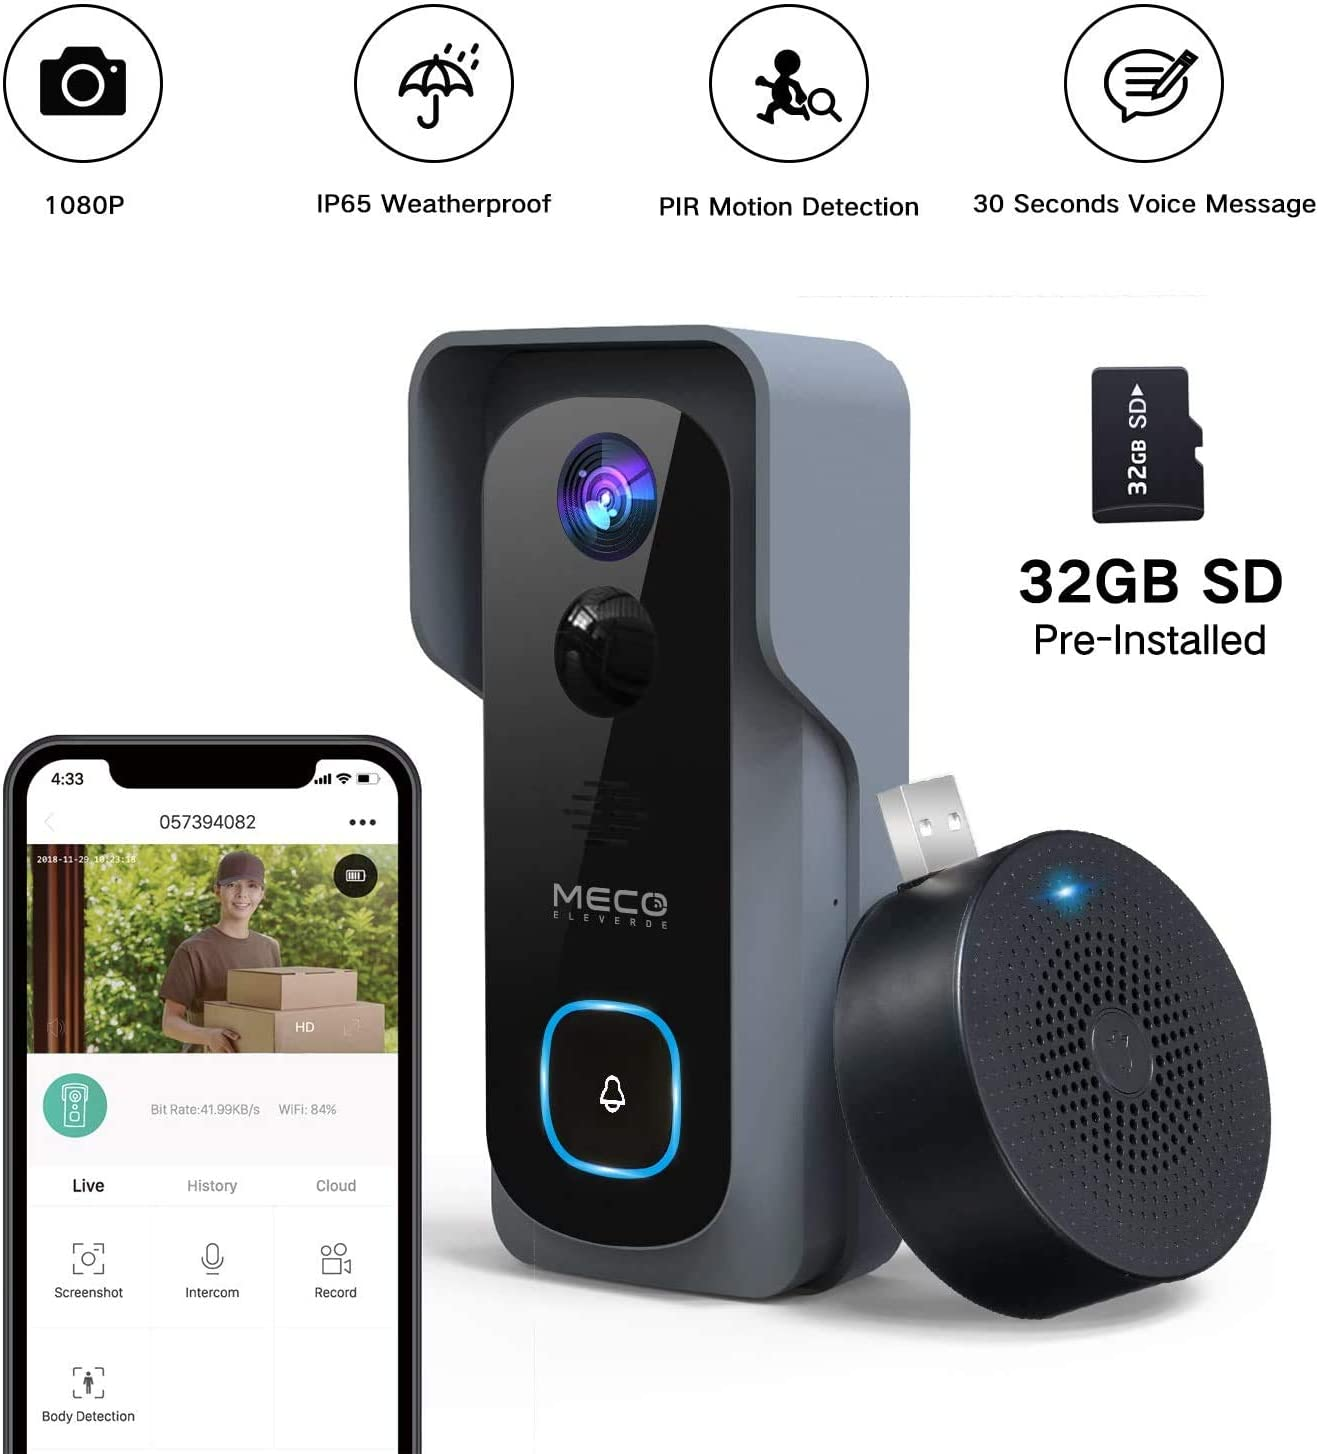 32GB Preinstalled WiFi Video Doorbell MECO 1080P Doorbell Camera with Free Chime, Wireless Doorbell with Motion Detector, Night Vision, IP65 Waterproof, 166 Wide Angle, 2 Way Audio, 2.4GHz WiFi